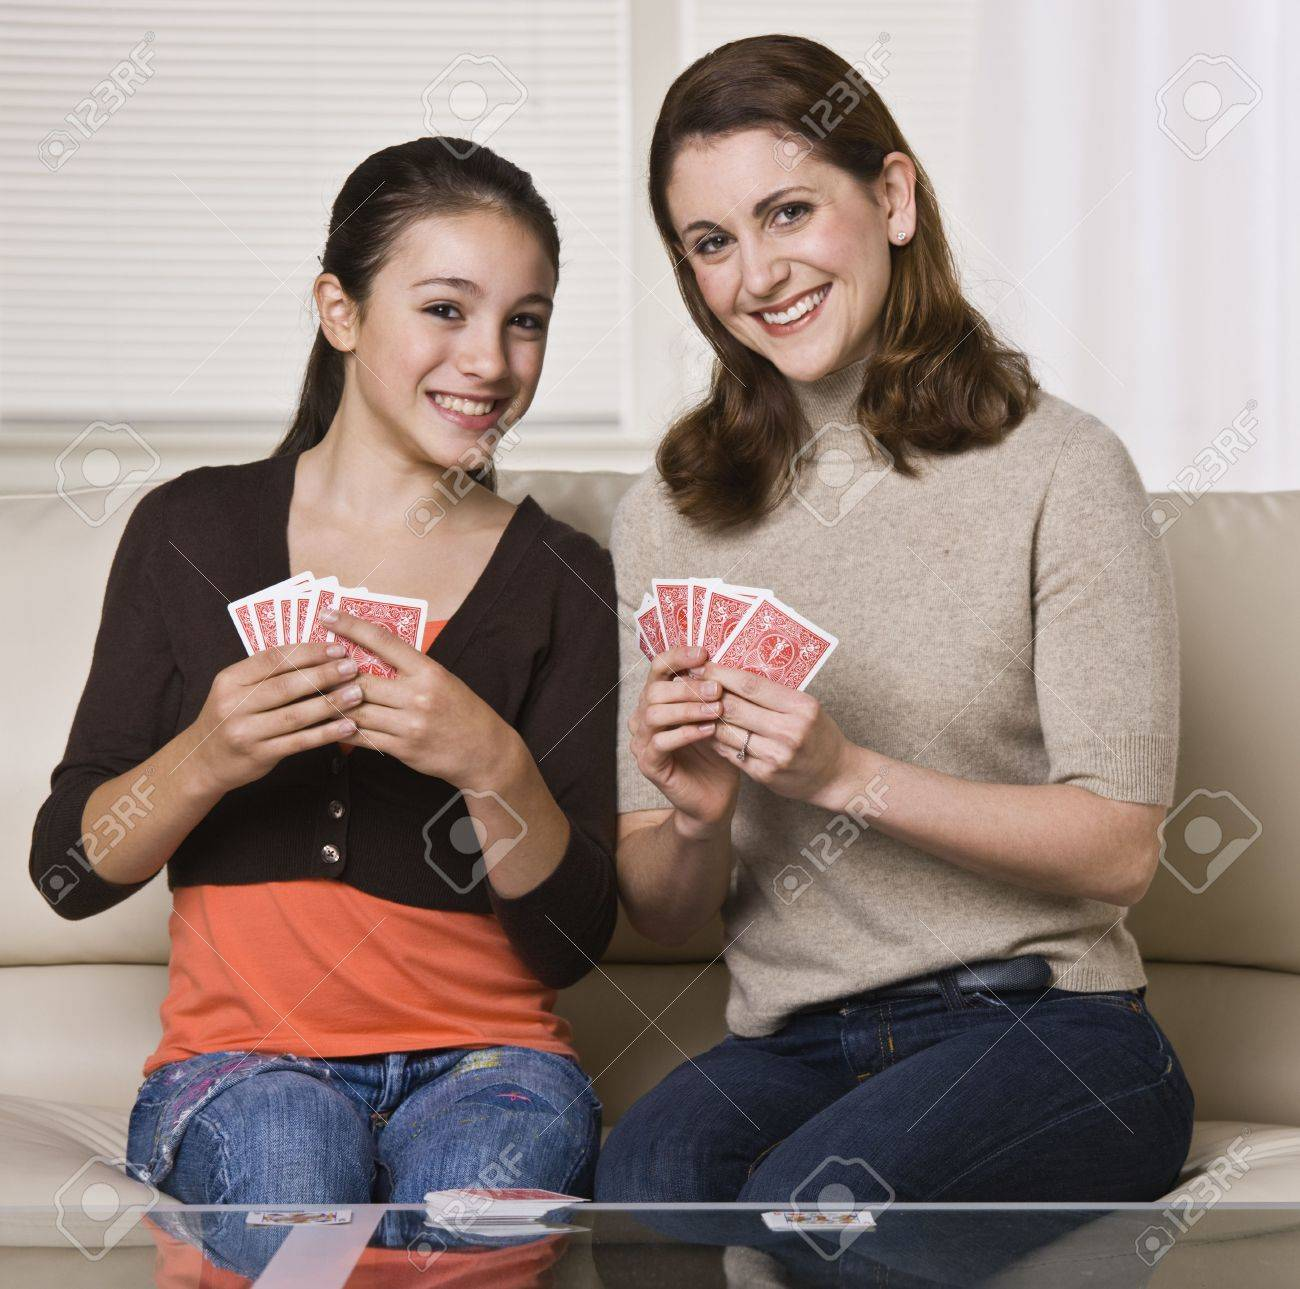 A young mother and her daughter are playing cards together.  They are smiling at the camera.  Square framed shot. Stock Photo - 5334028